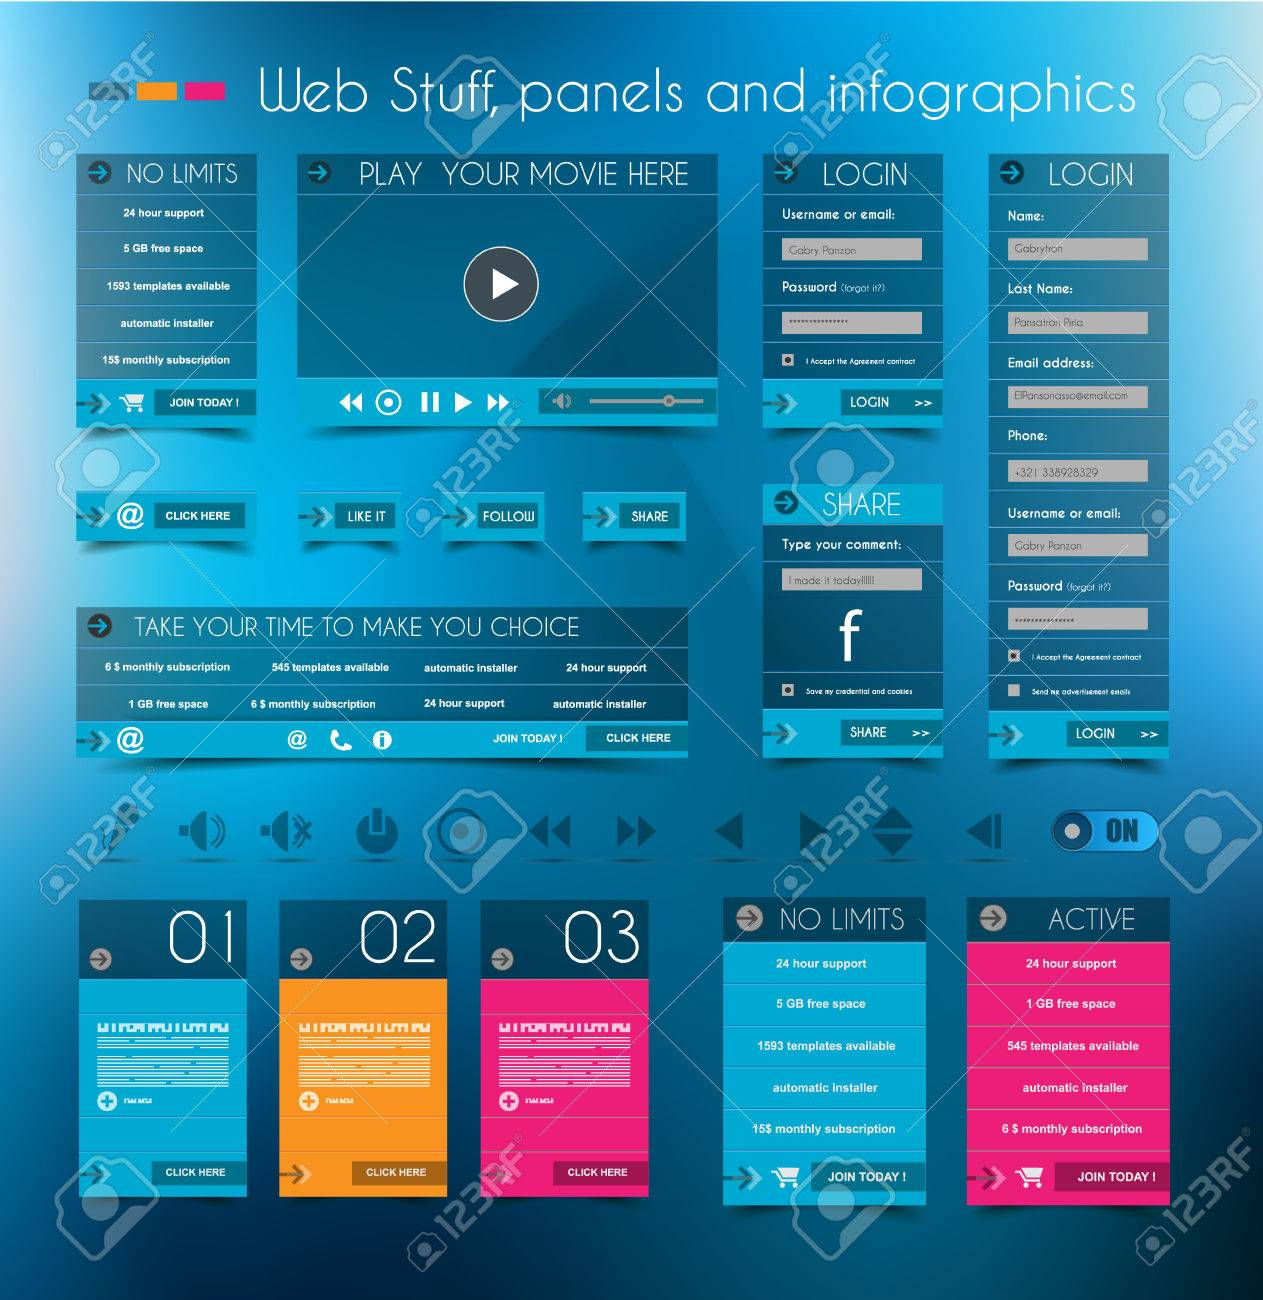 Web Design Stuff: Price Panels, Login Forms, Headers, Footers ...